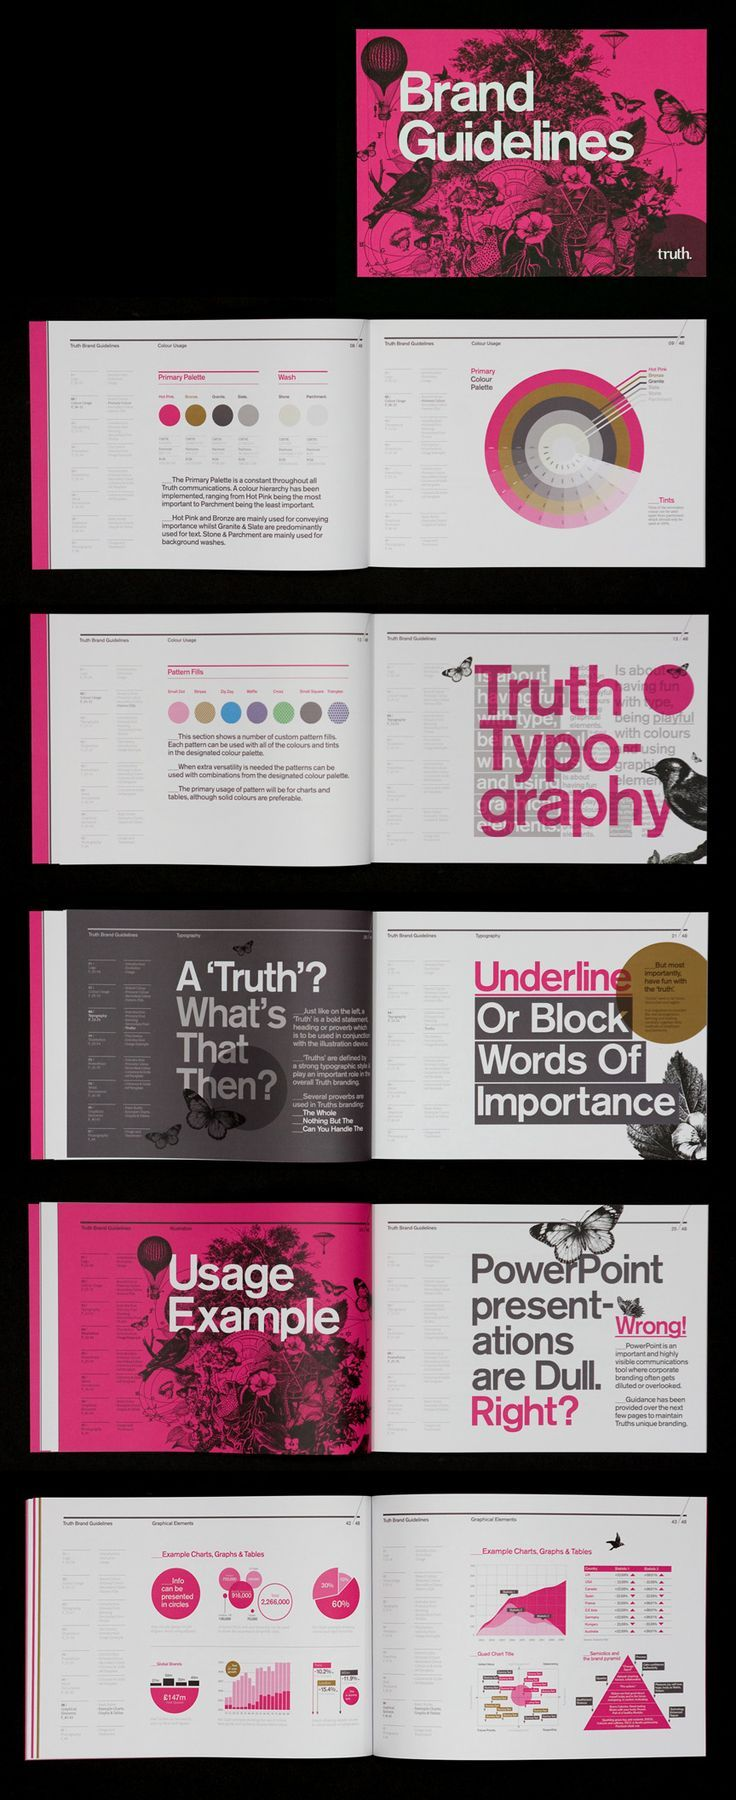 Truth Brand Guidelines [Designer - Mash Creative] I really like the typography formatting used and the colors. #marketing #blog